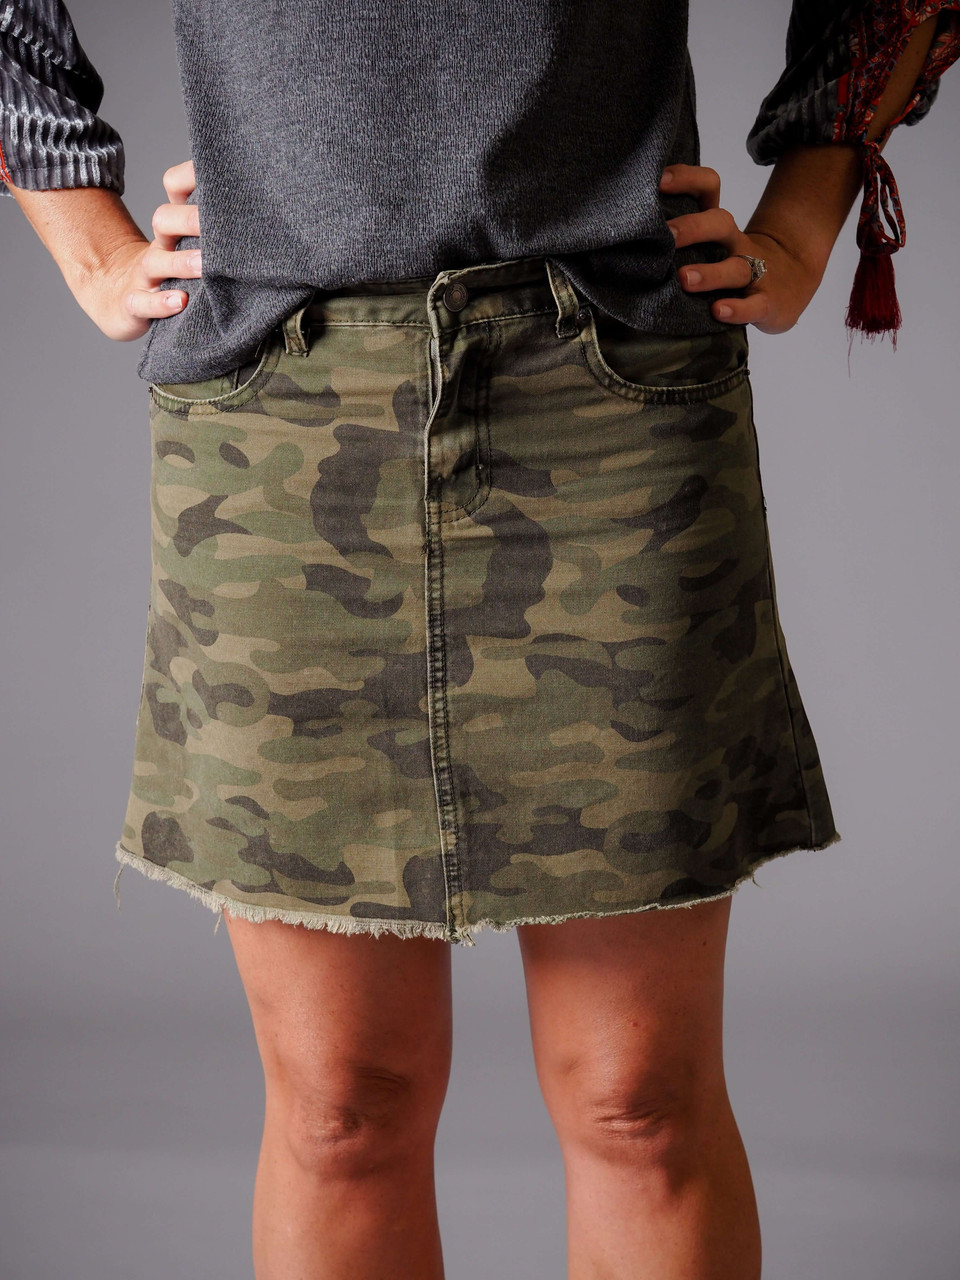 green camo print skirt with pockets and frayed edge